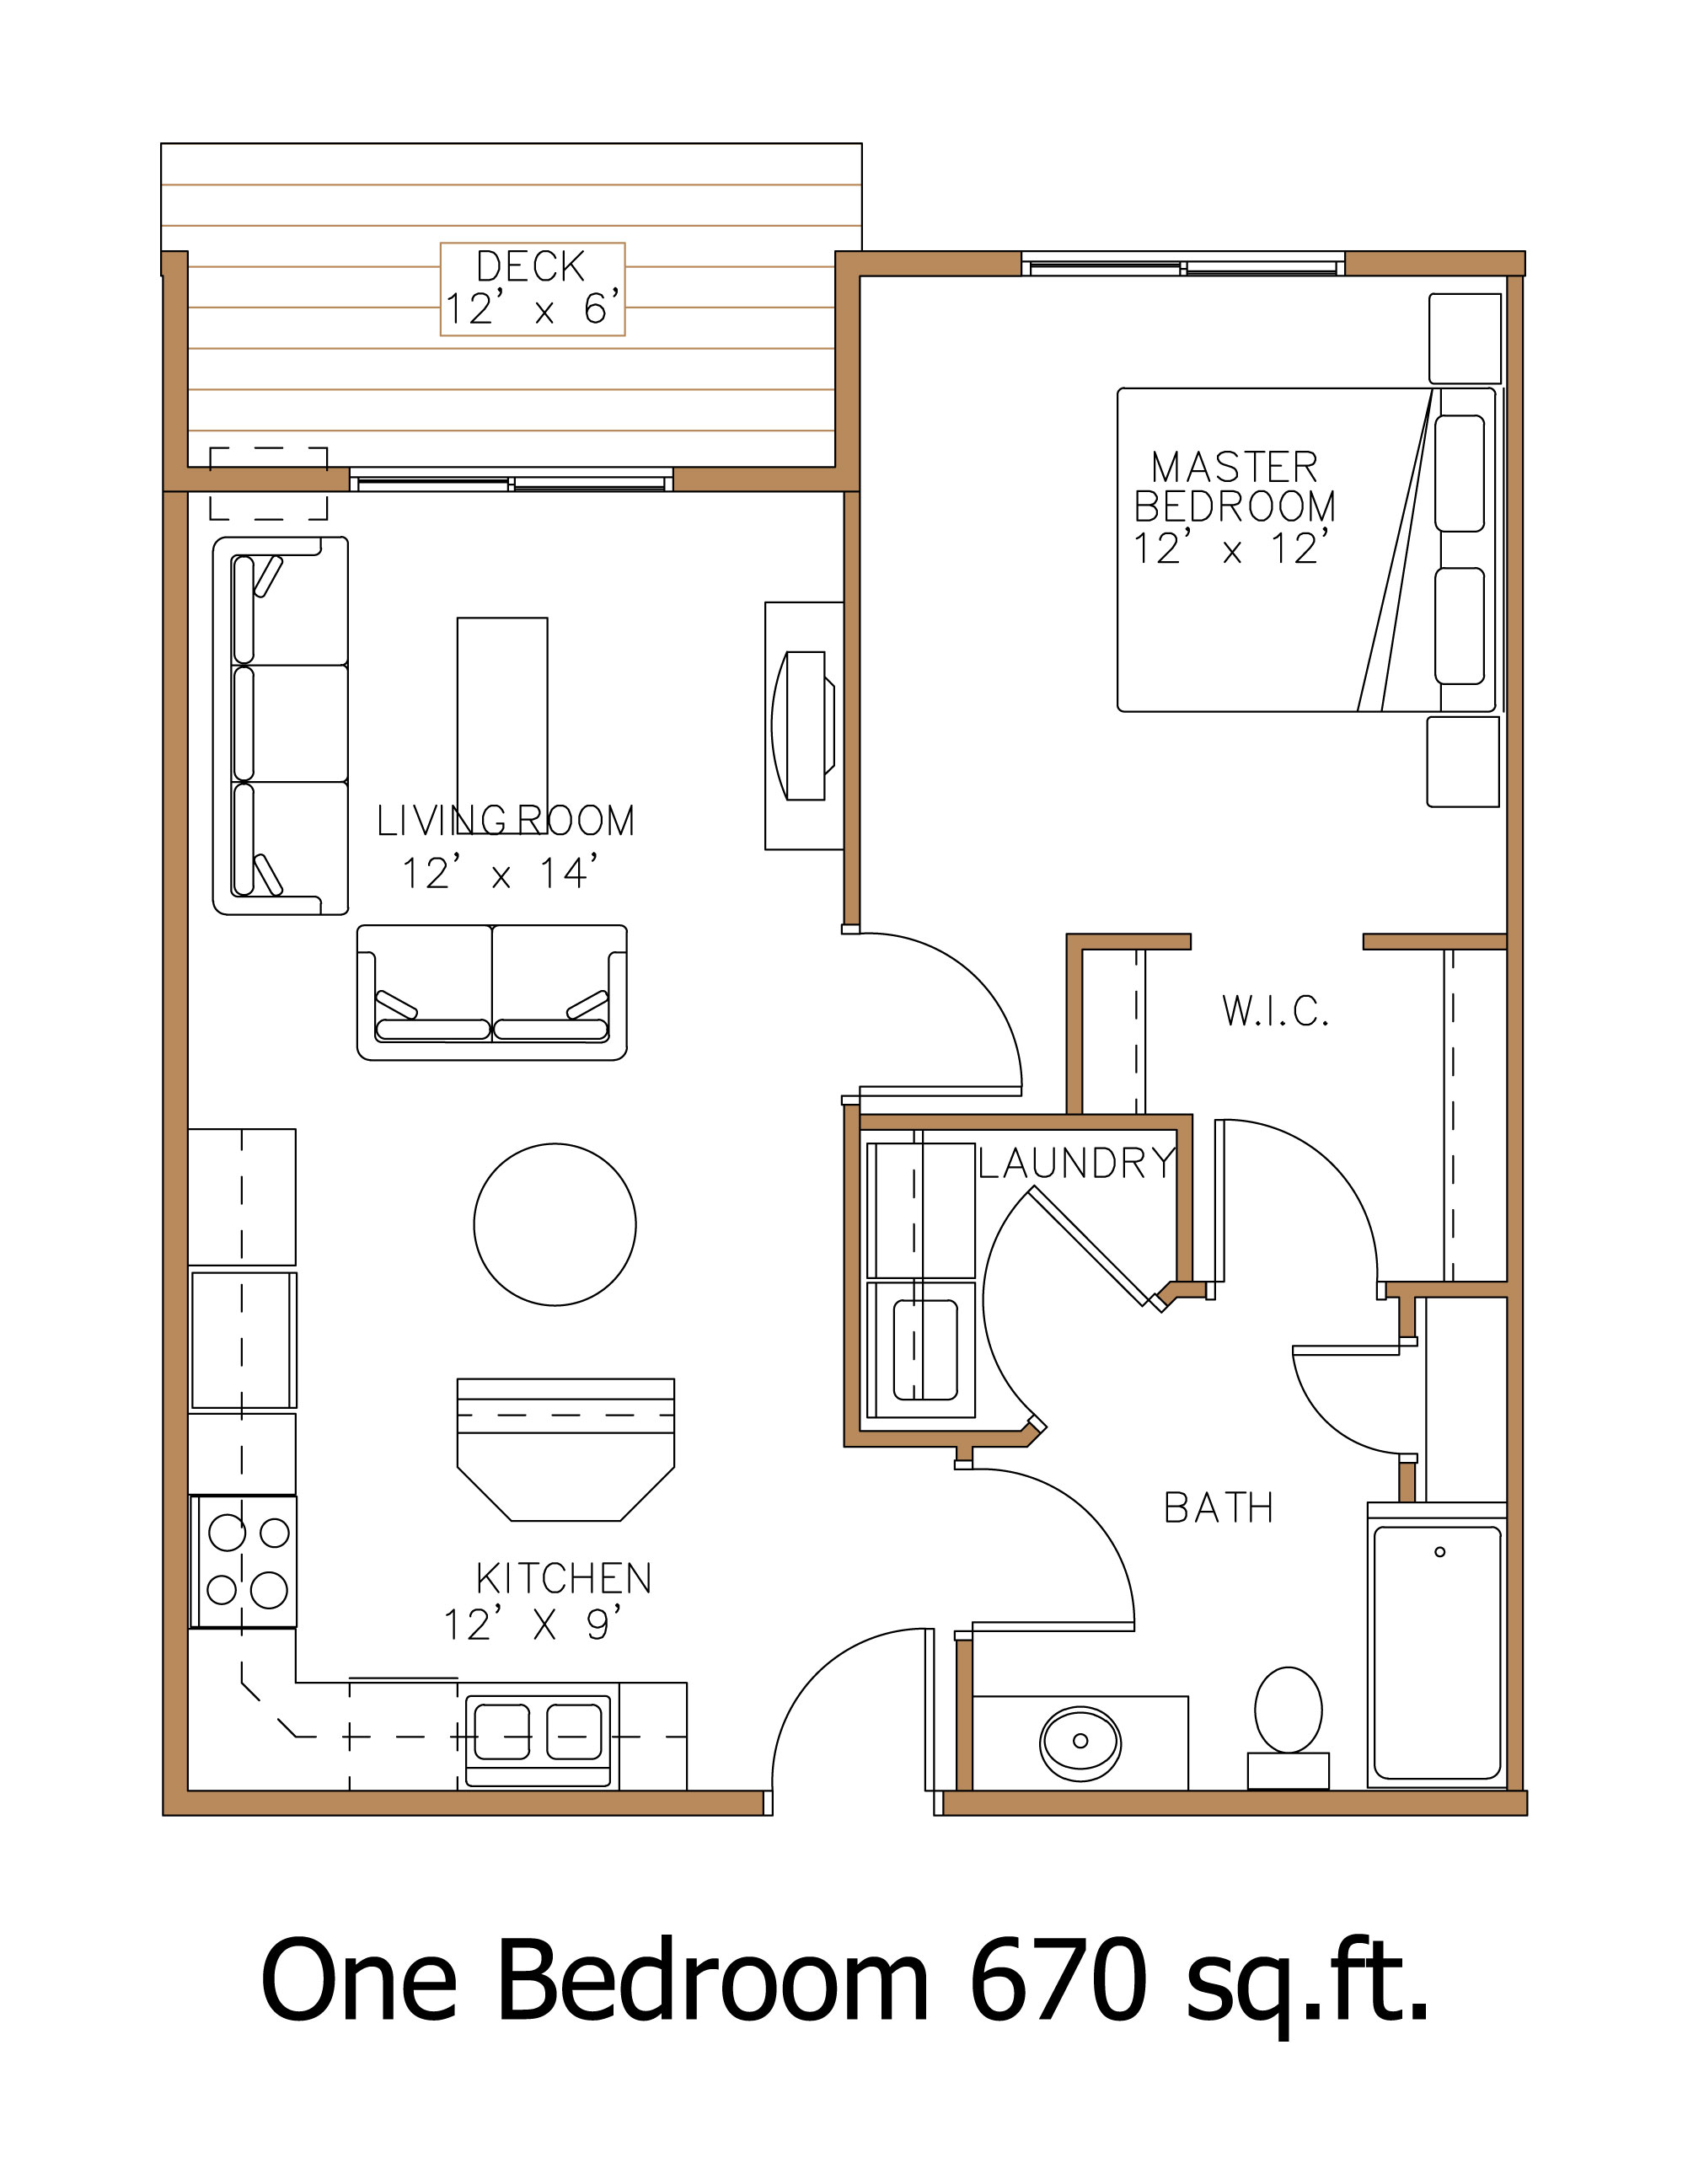 Hawley mn apartment floor plans great north properties llc for I bedroom house plans